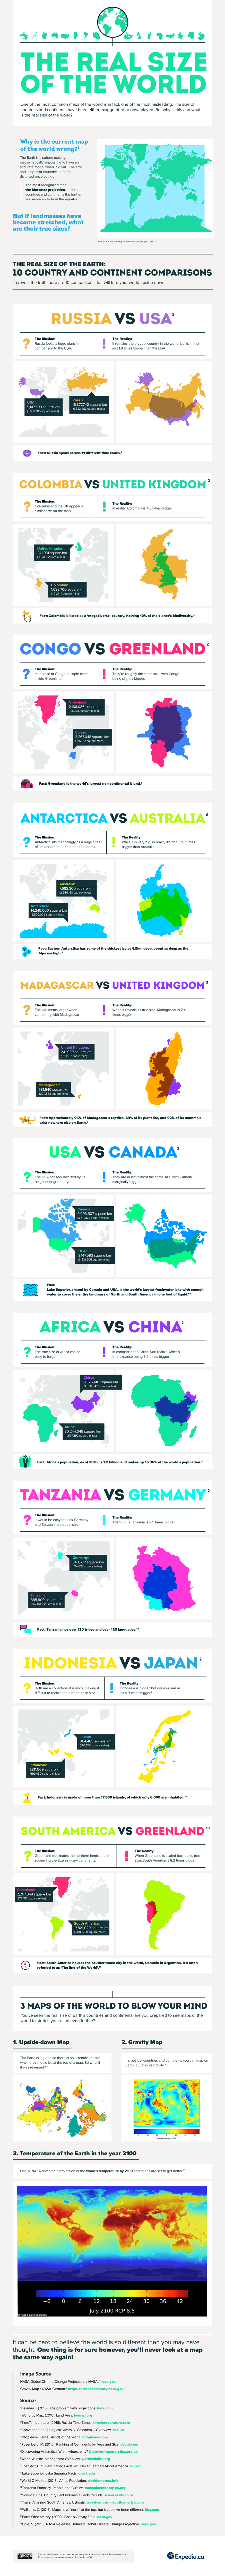 The real size of the world [Infographic] - Expedia.ca